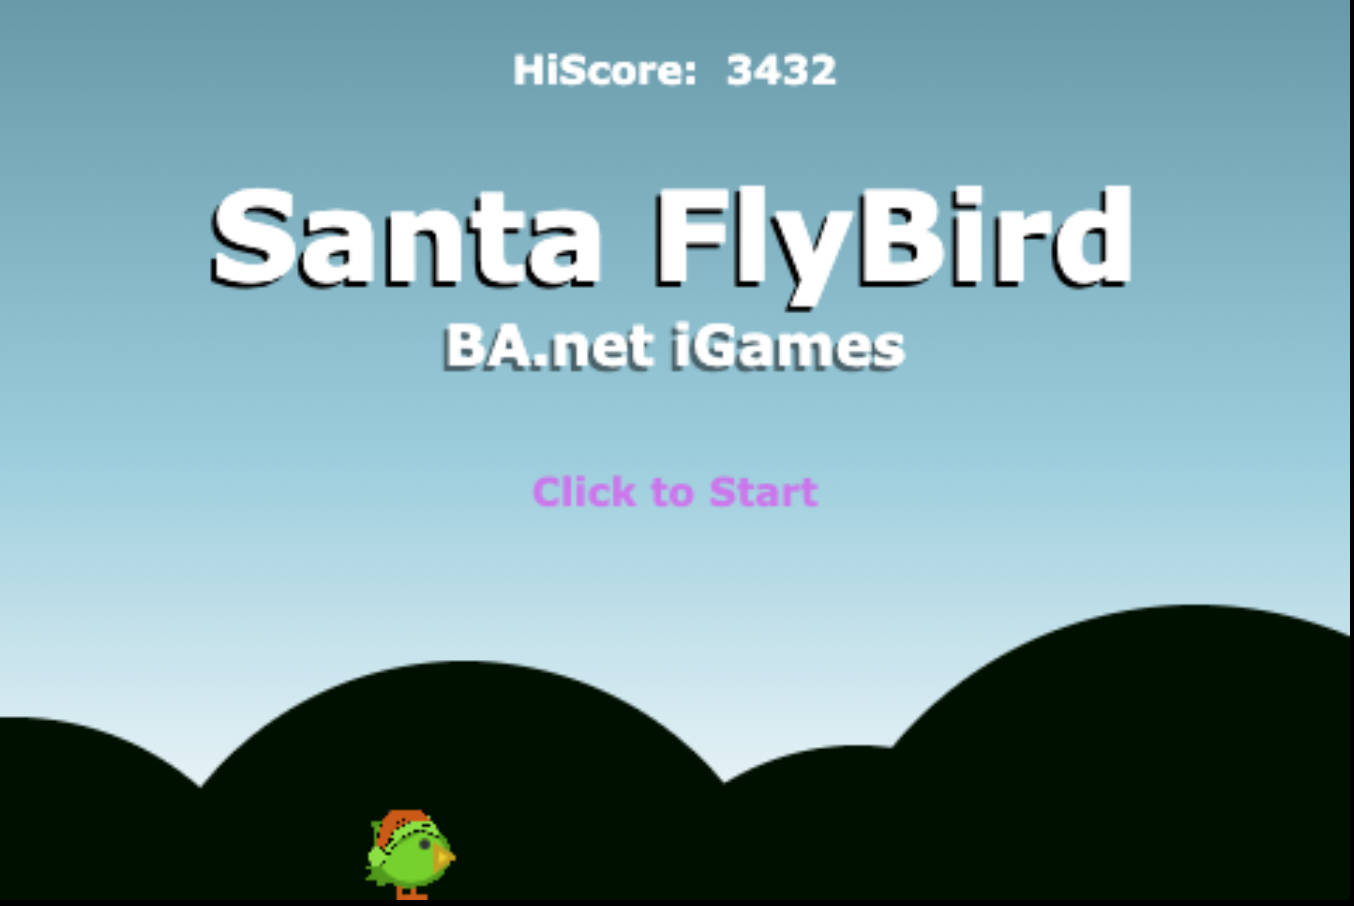 SantaFlyBird game